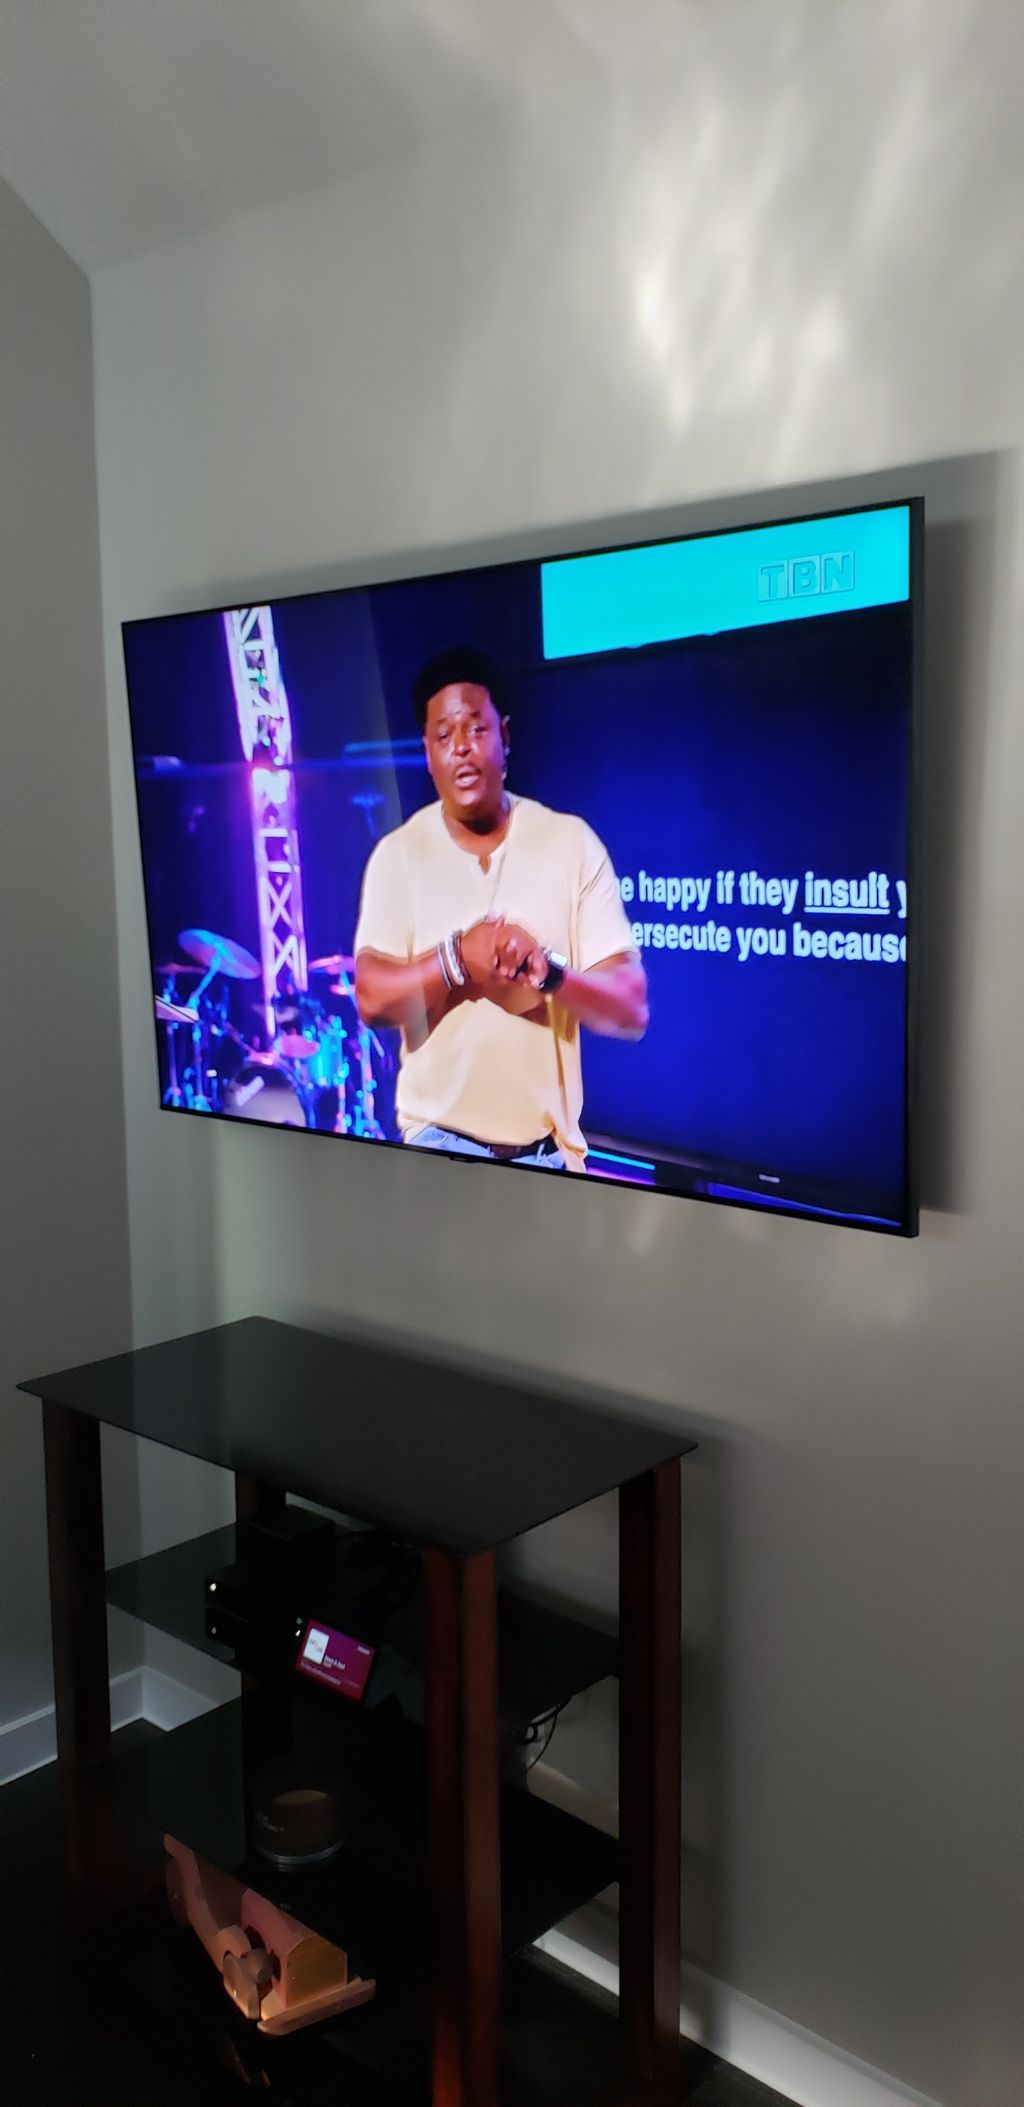 3 TV Mounting and 2 Ring Security Cameras